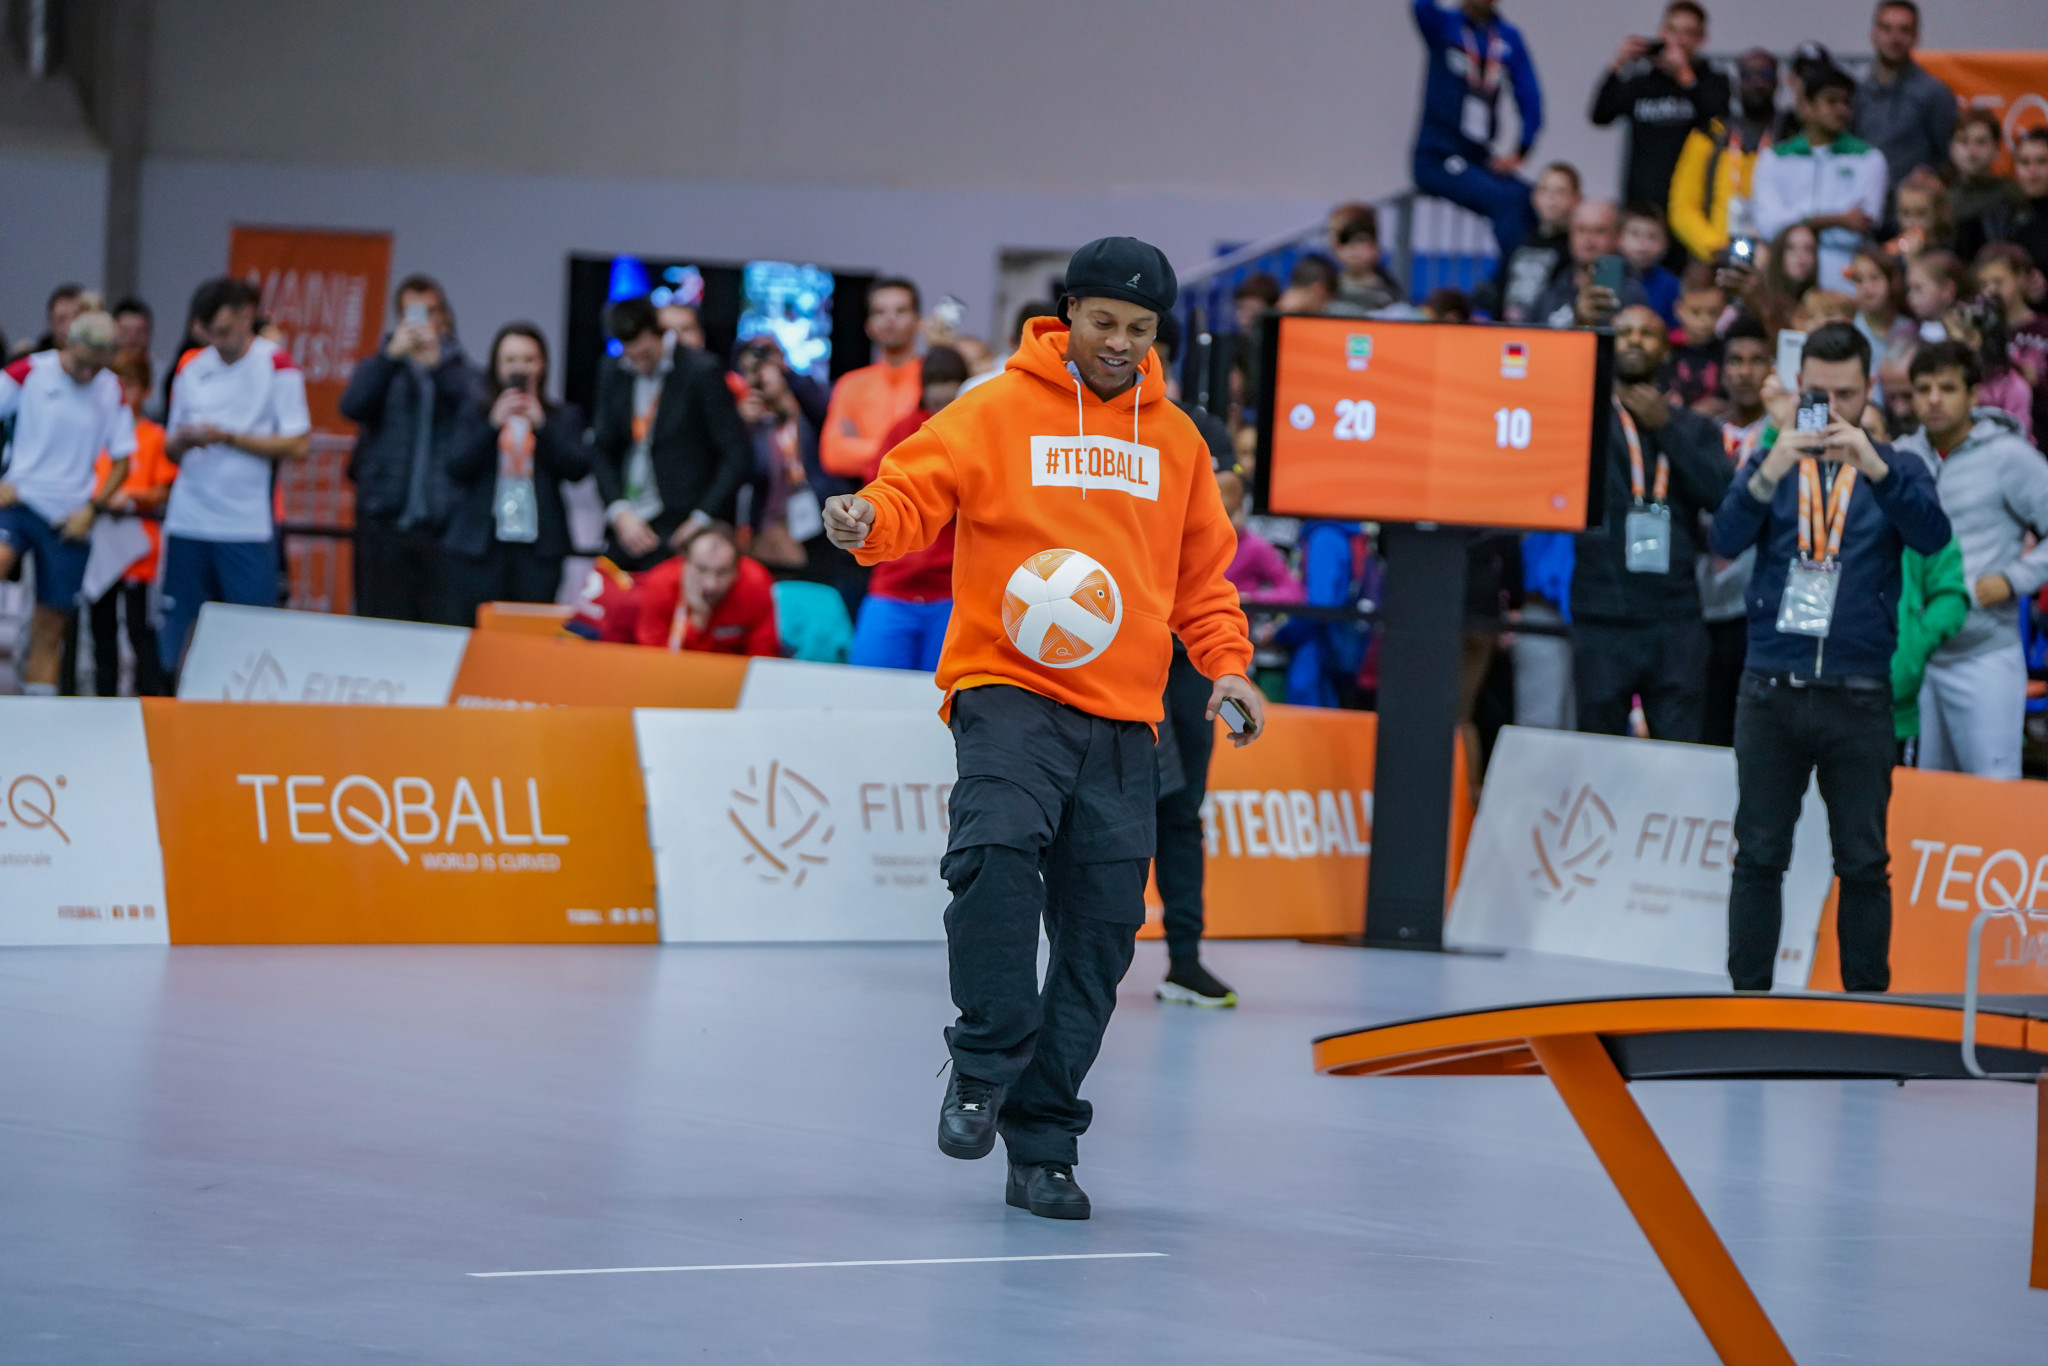 Brazilian football legend Ronaldinho showed off his teqball skills at the World Championships ©FITEQ